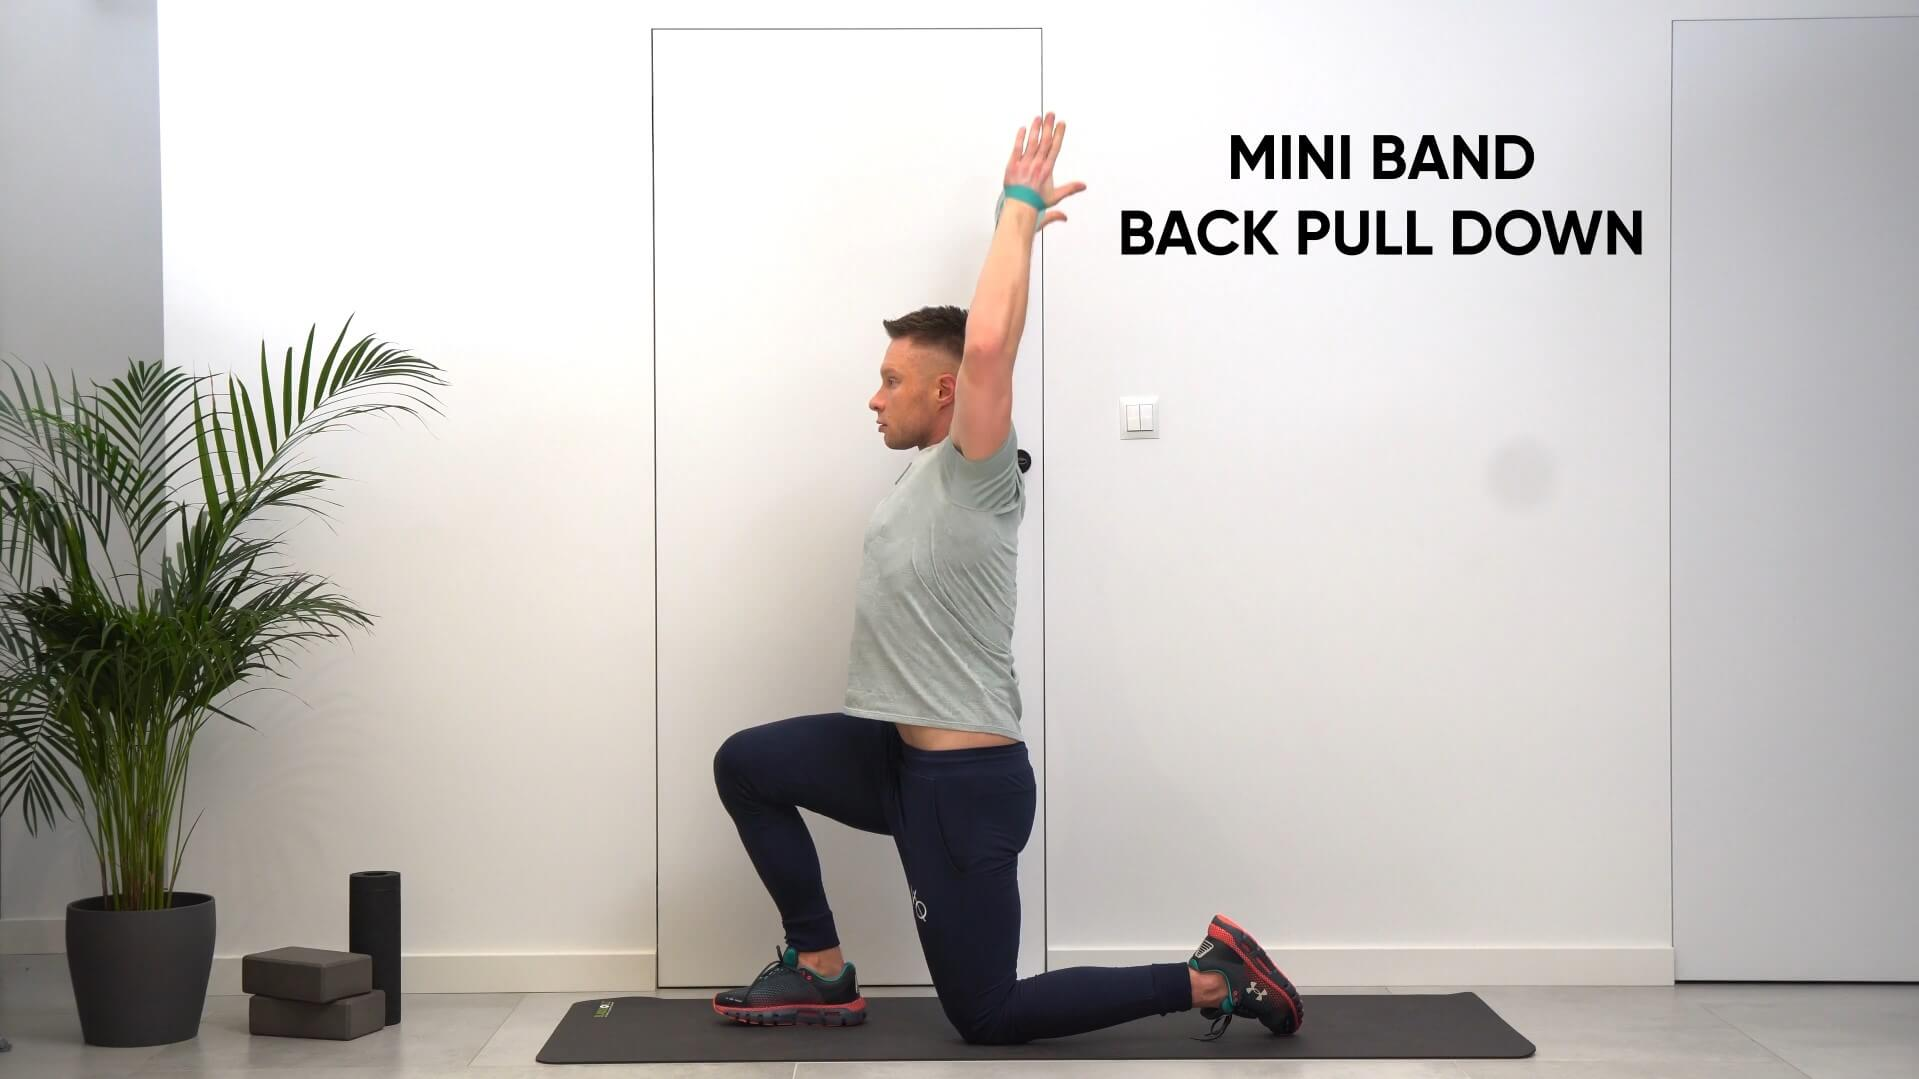 Mini band back pull down